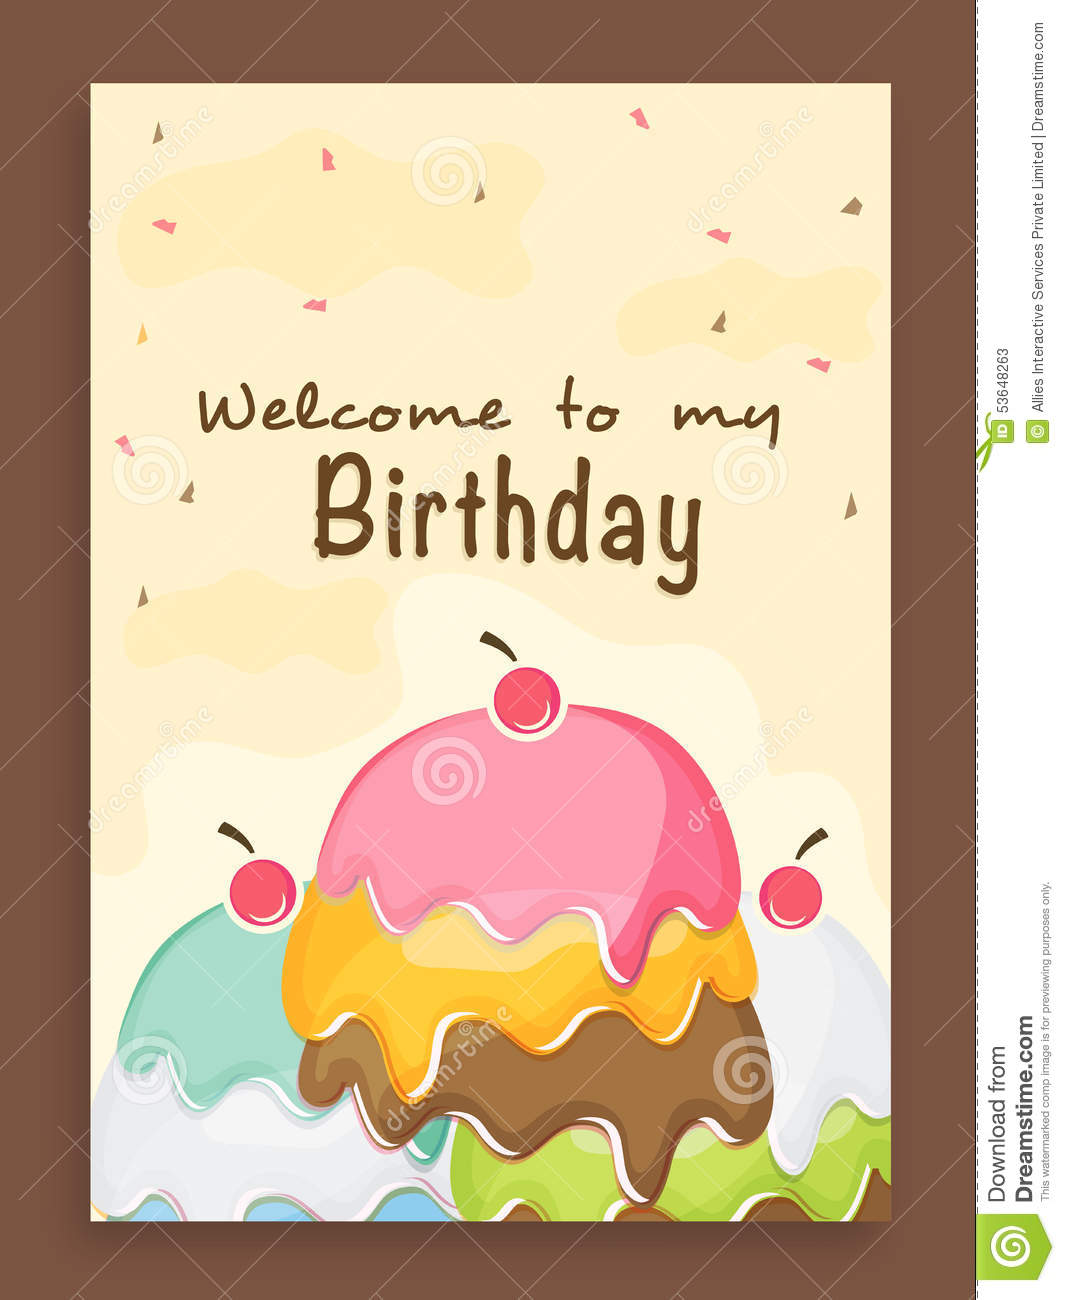 birthday party invitation card design ; invitation-card-design-birthday-party-beautiful-vintage-celebration-decorated-colorful-cake-53648263